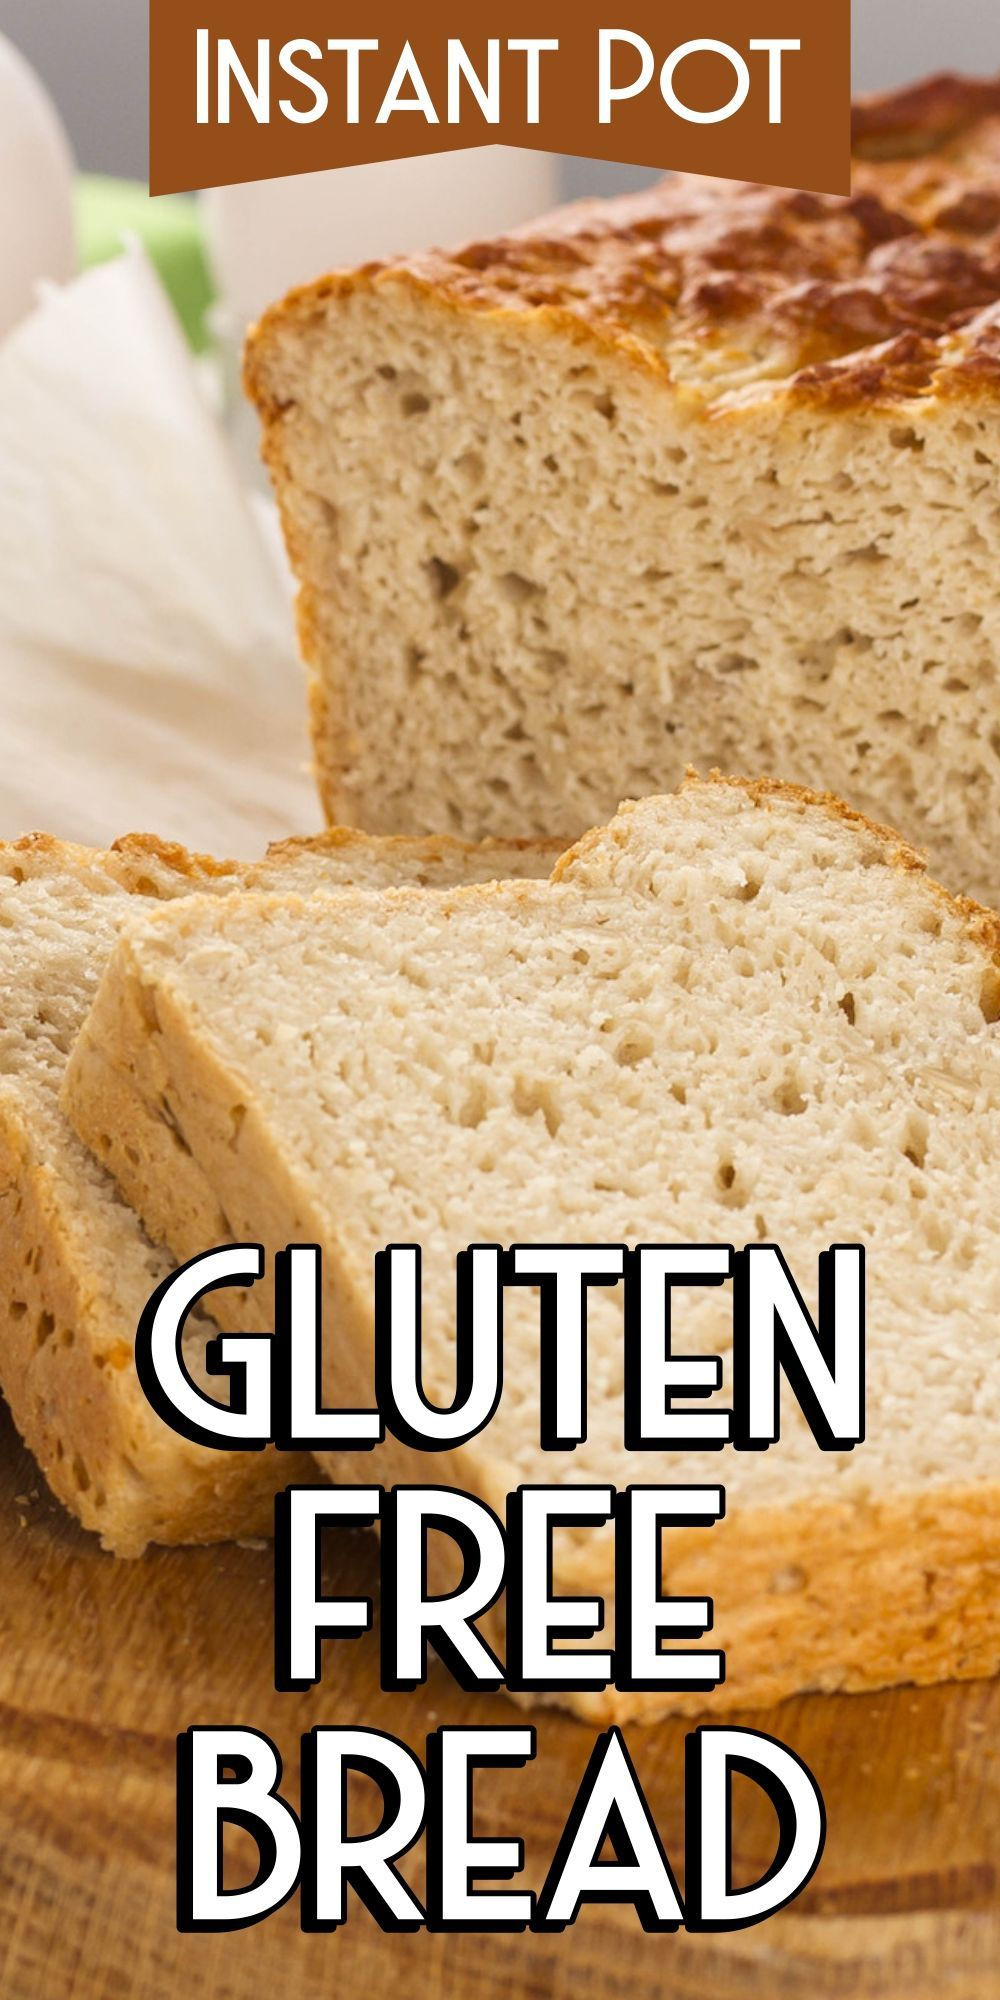 Instant Pot Gluten Free Bread Corrie Cooks Recipe Gluten Free Instant Pot Recipes Gluten Free Instant Pot Gluten Free Artisan Bread